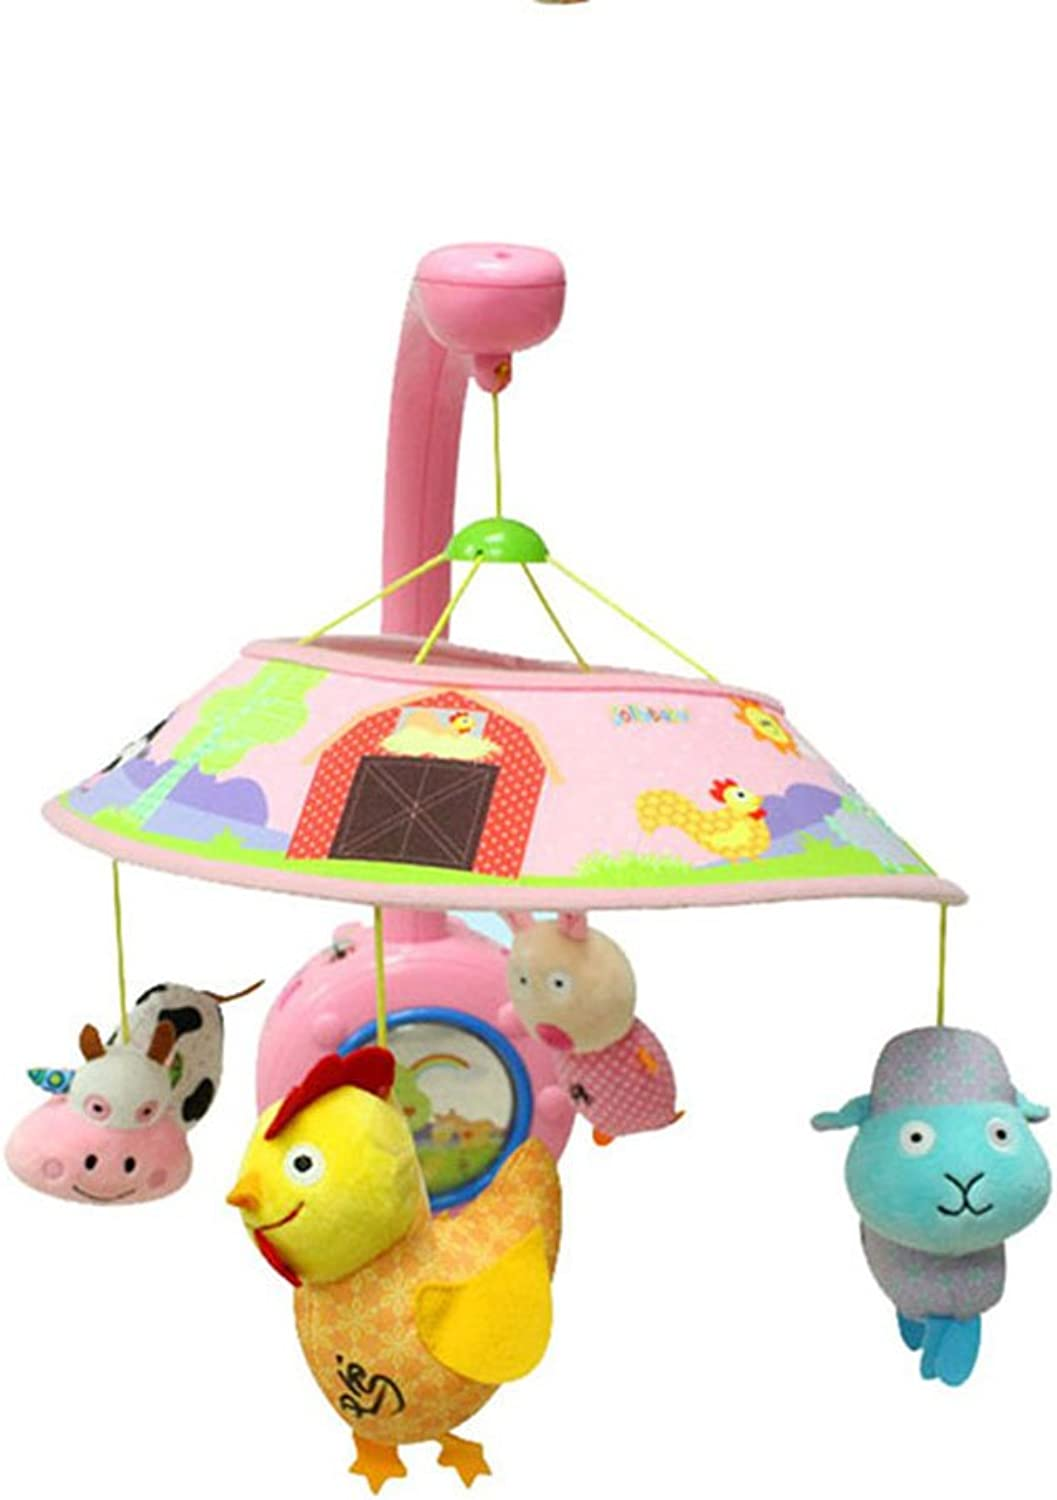 Amazemarket 03 Years Baby Rattle Music Box Toy Plush Animal Crib Mobile Holder Arm Stroller Pushchair Bed bell Spinning Early Learning Development Multifunctional Kids Gift (pink)